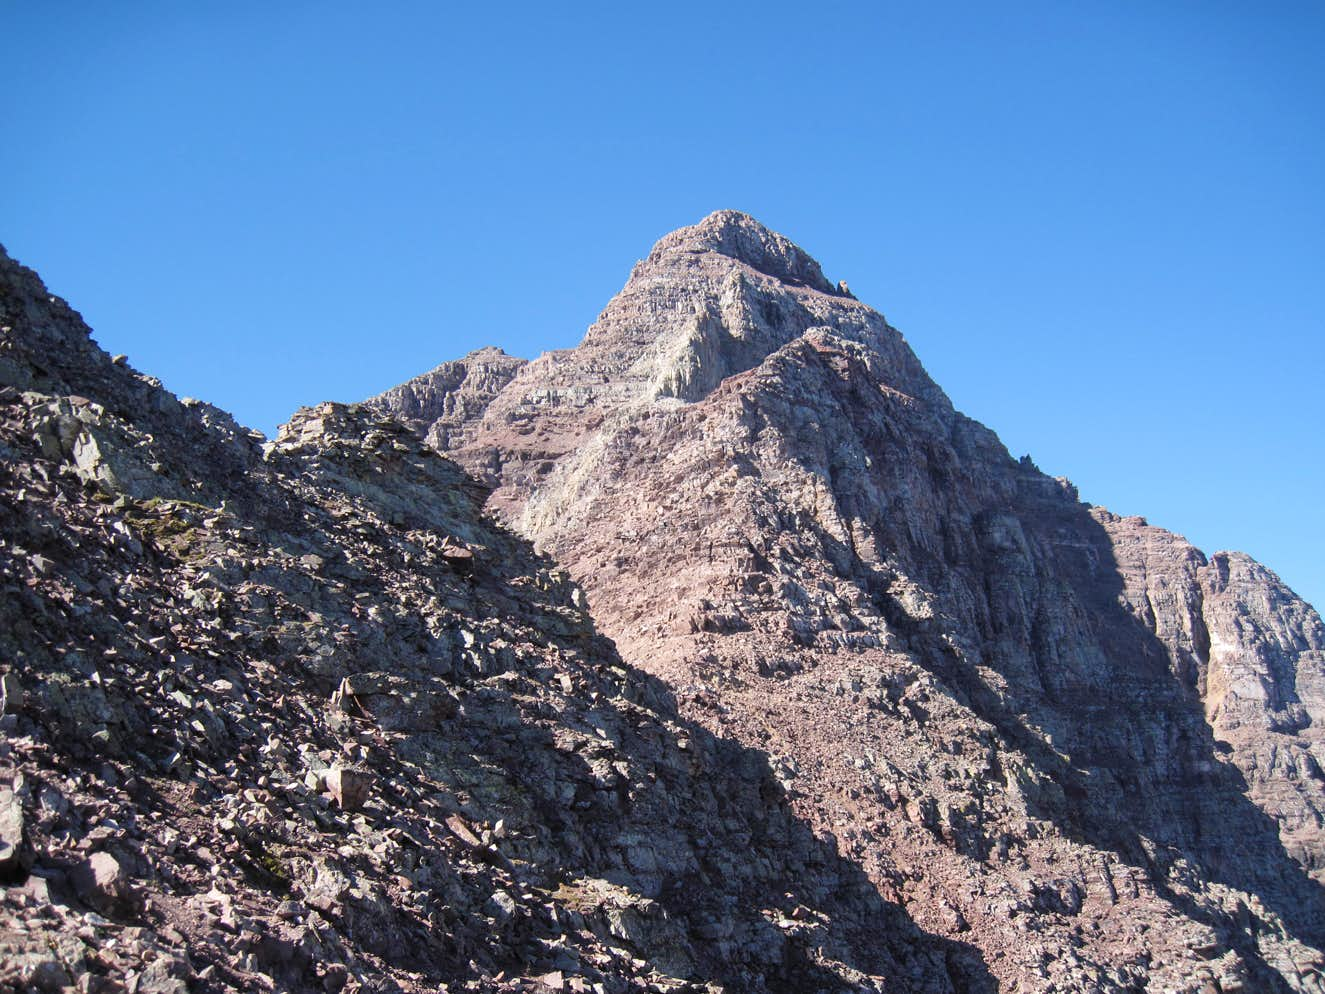 Pyramid Peak: Are We Just Mountain Goats?